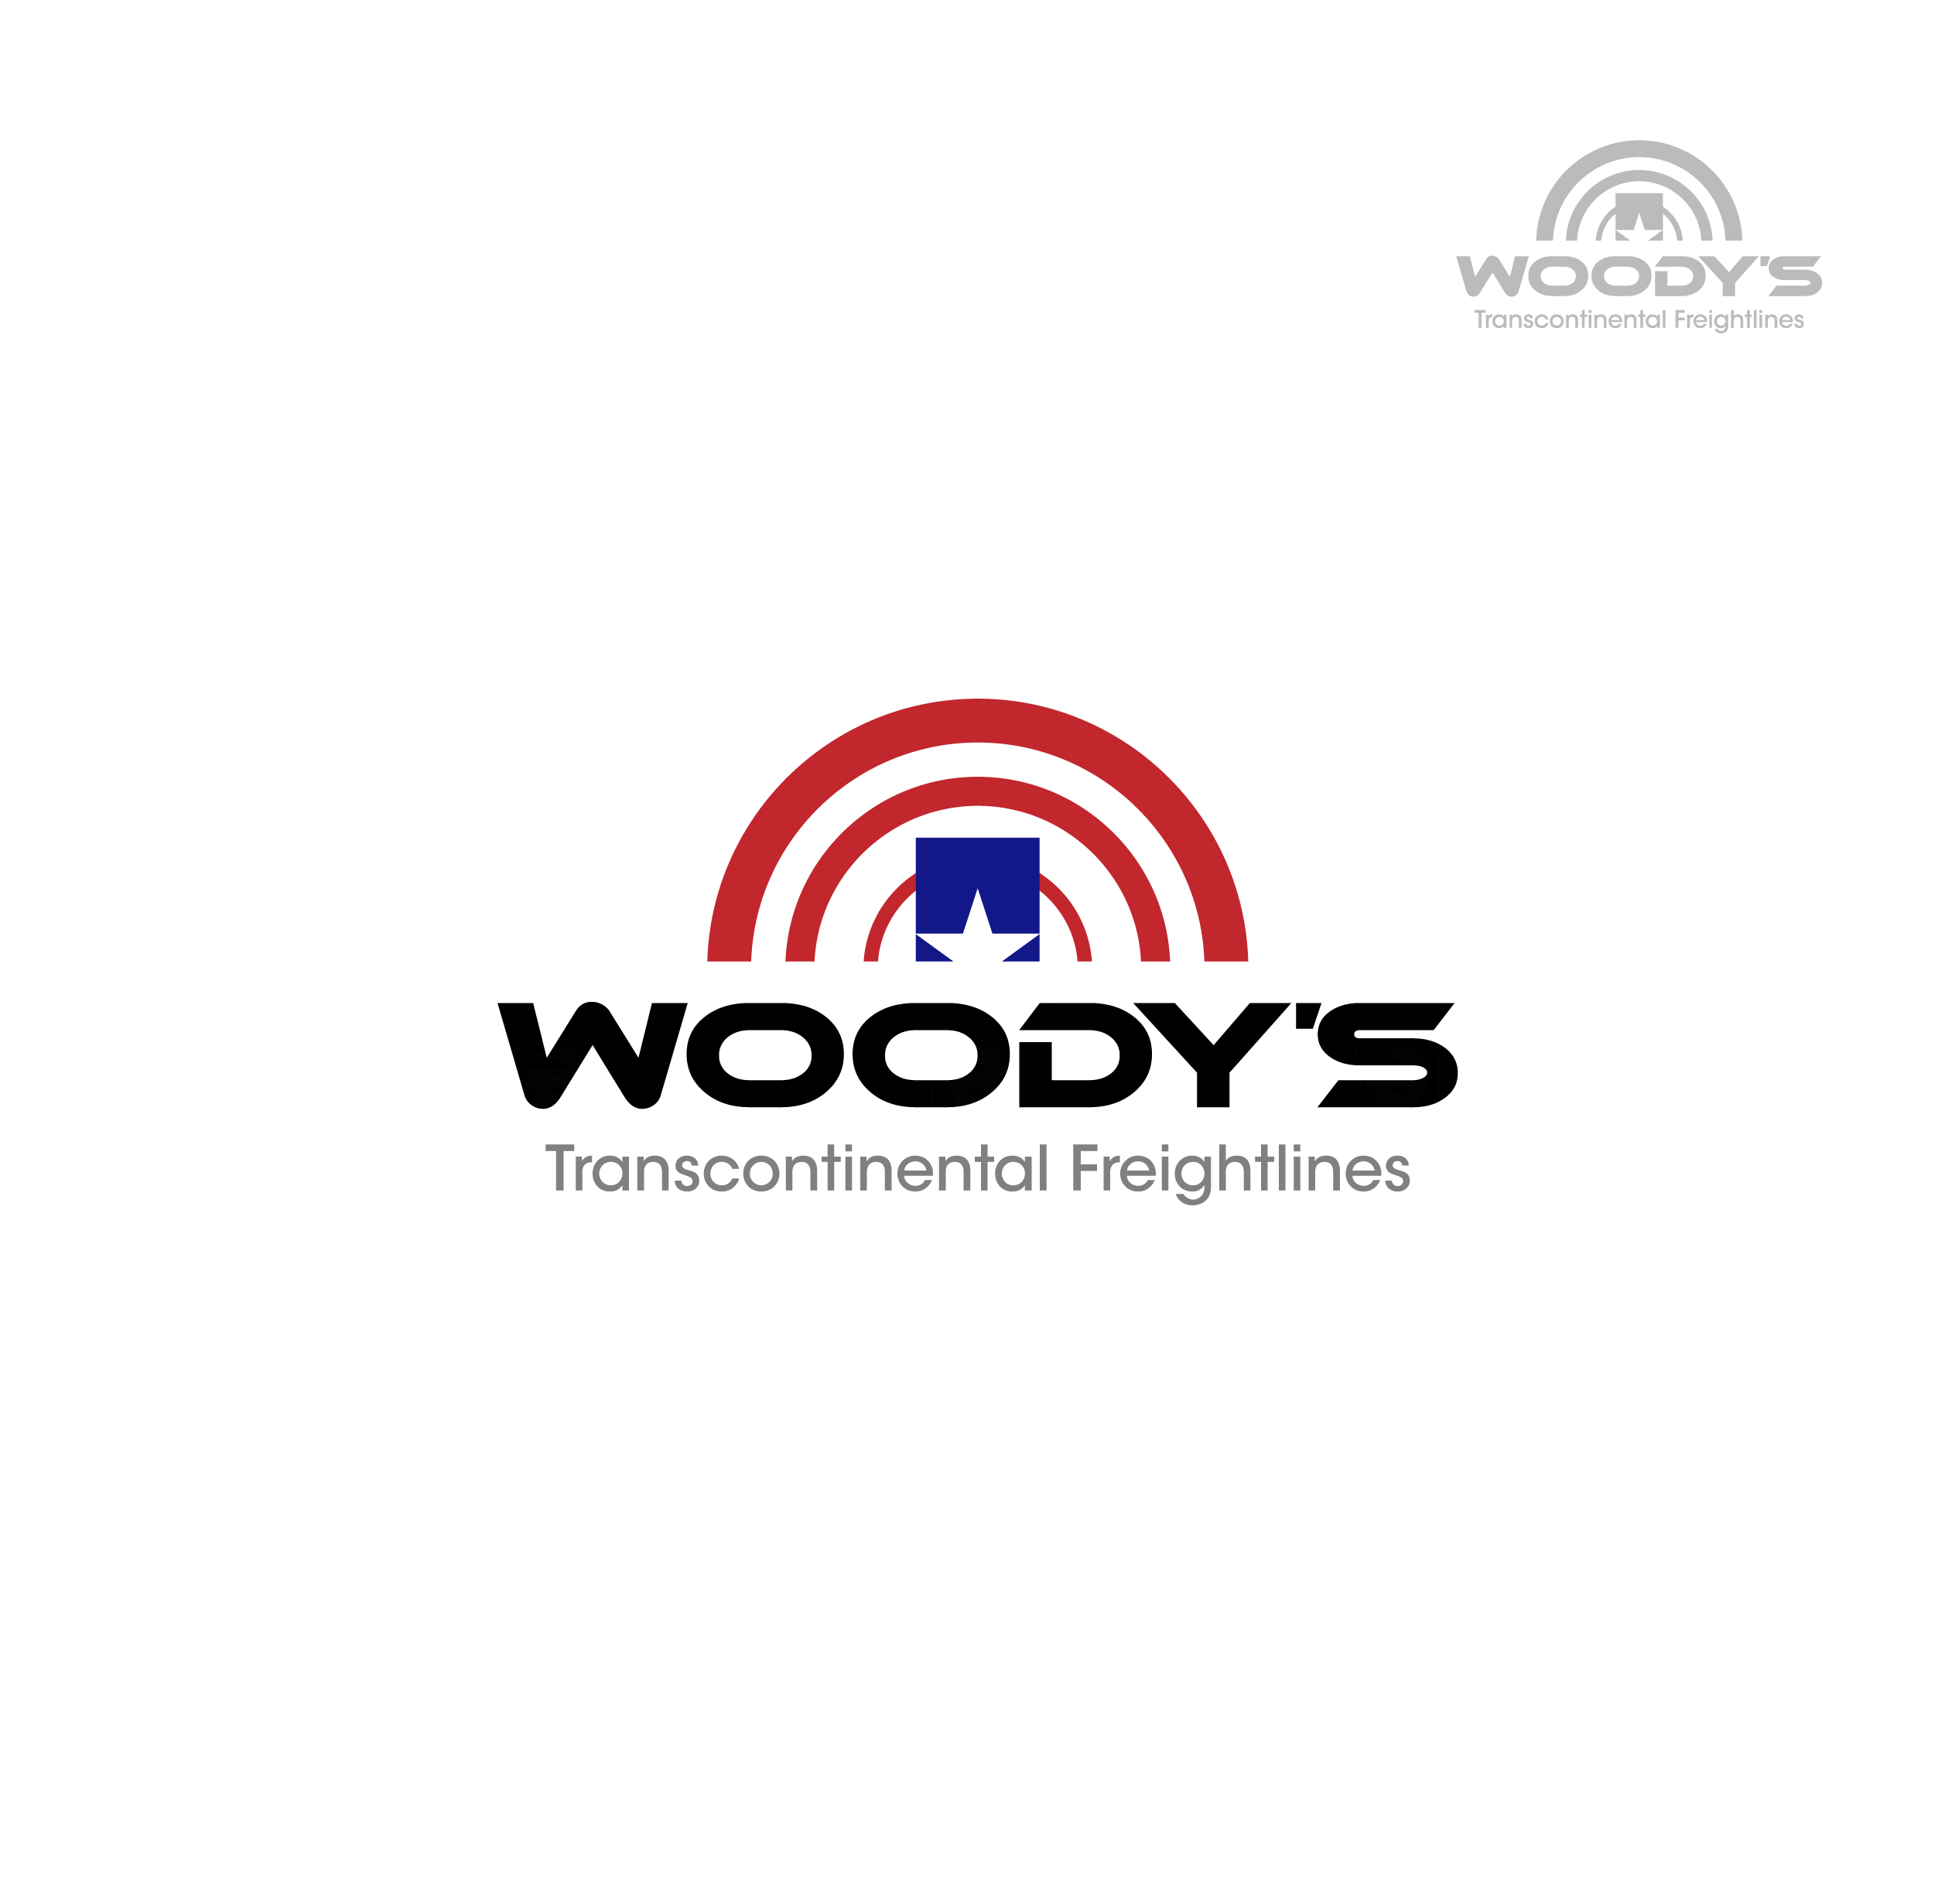 Logo Design by chinie05 - Entry No. 58 in the Logo Design Contest Creative Logo Design for Woody's Transcontinental Freightlines.